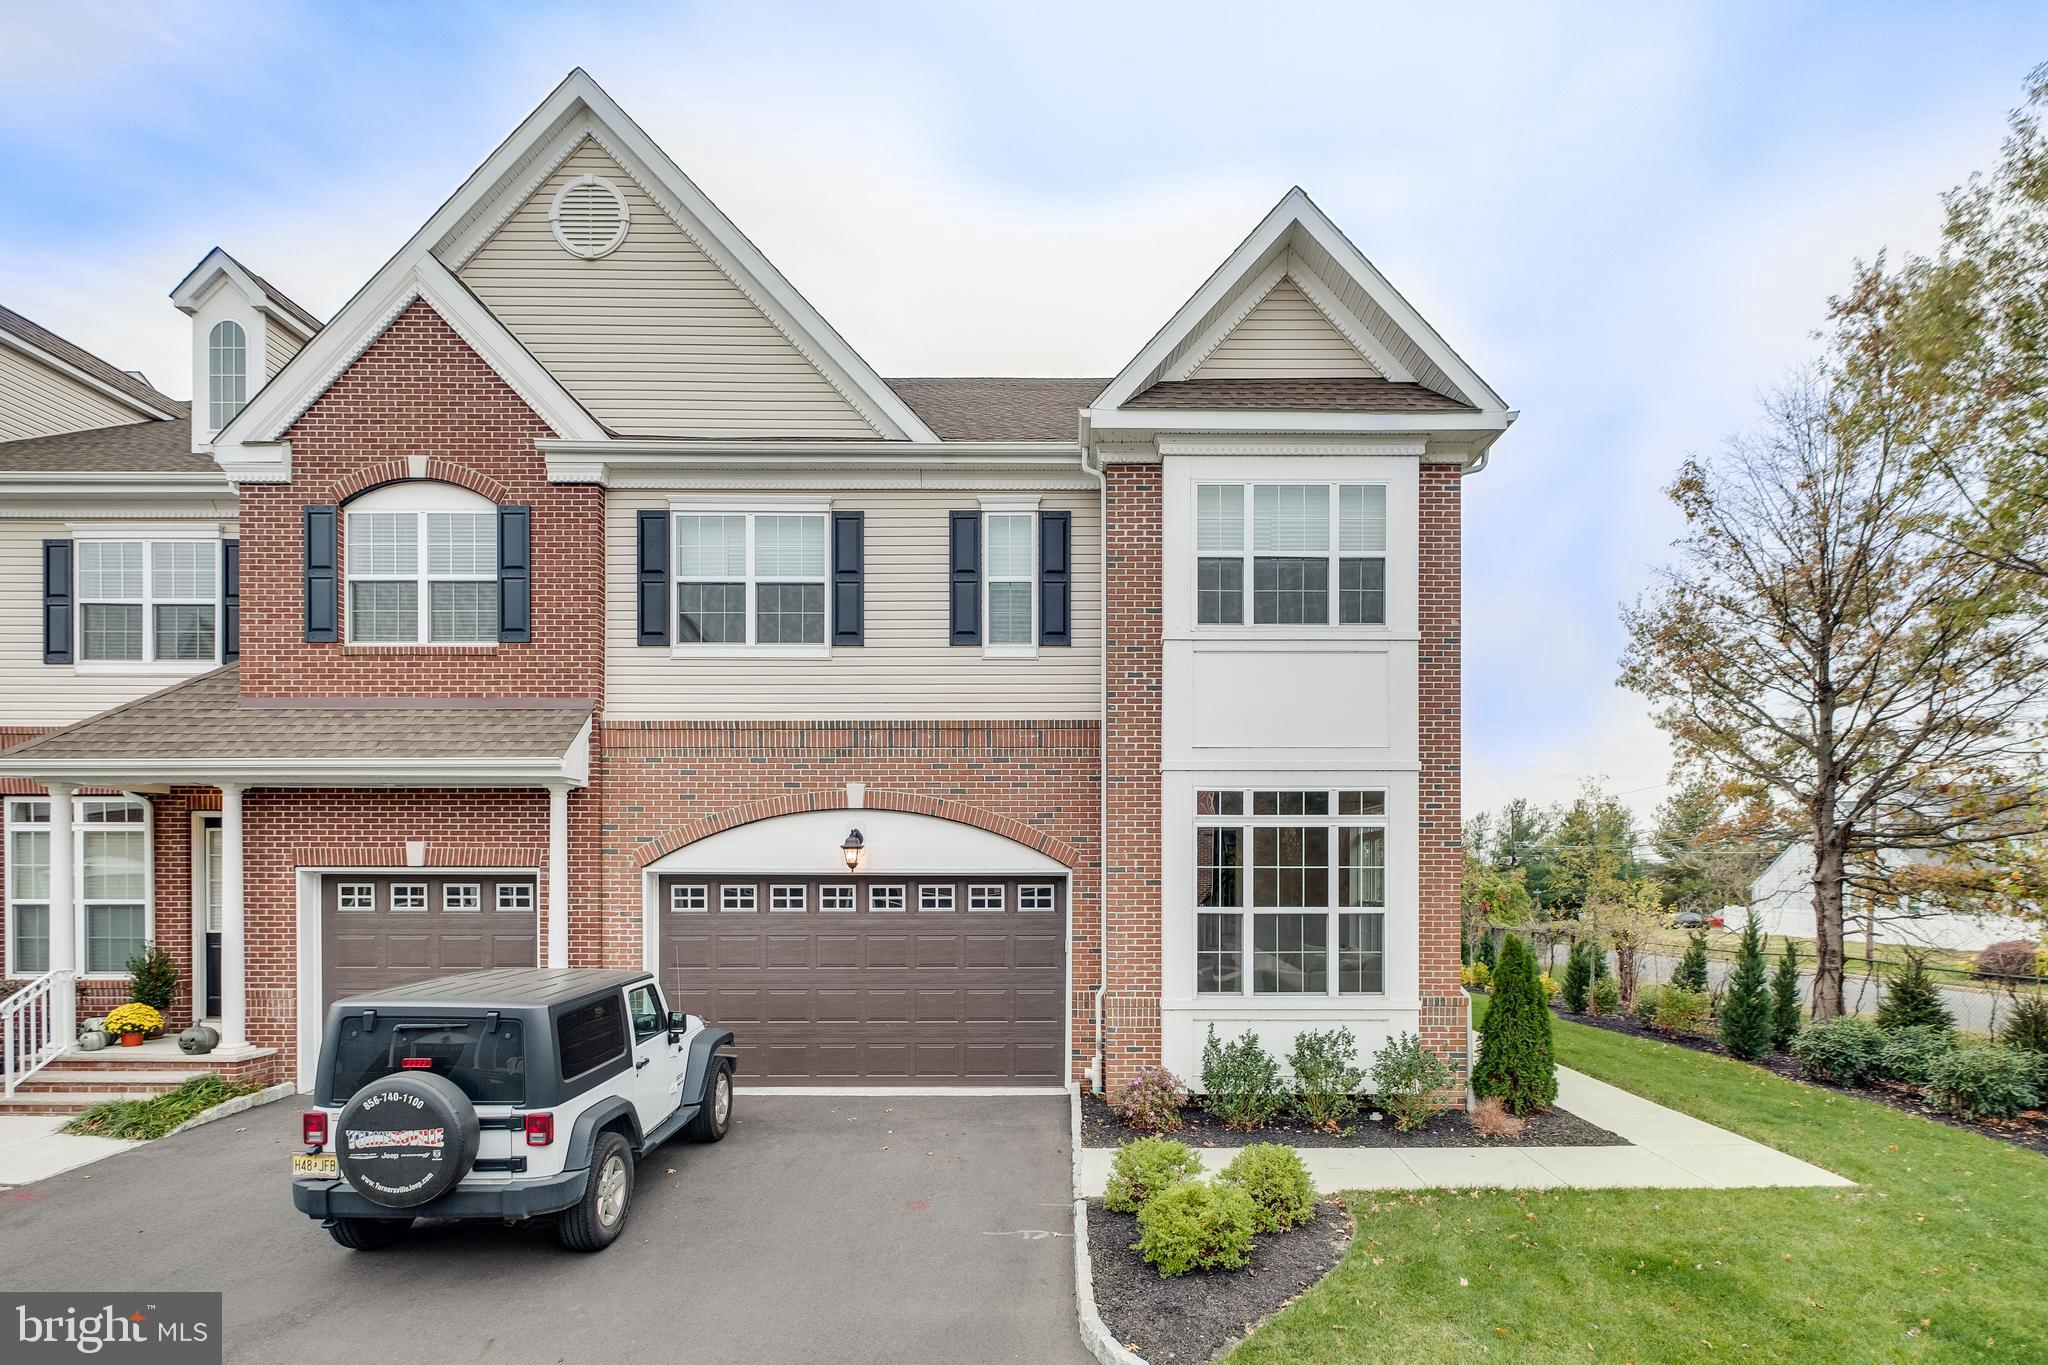 1920 YEARLING CT, CHERRY HILL, NJ 08002